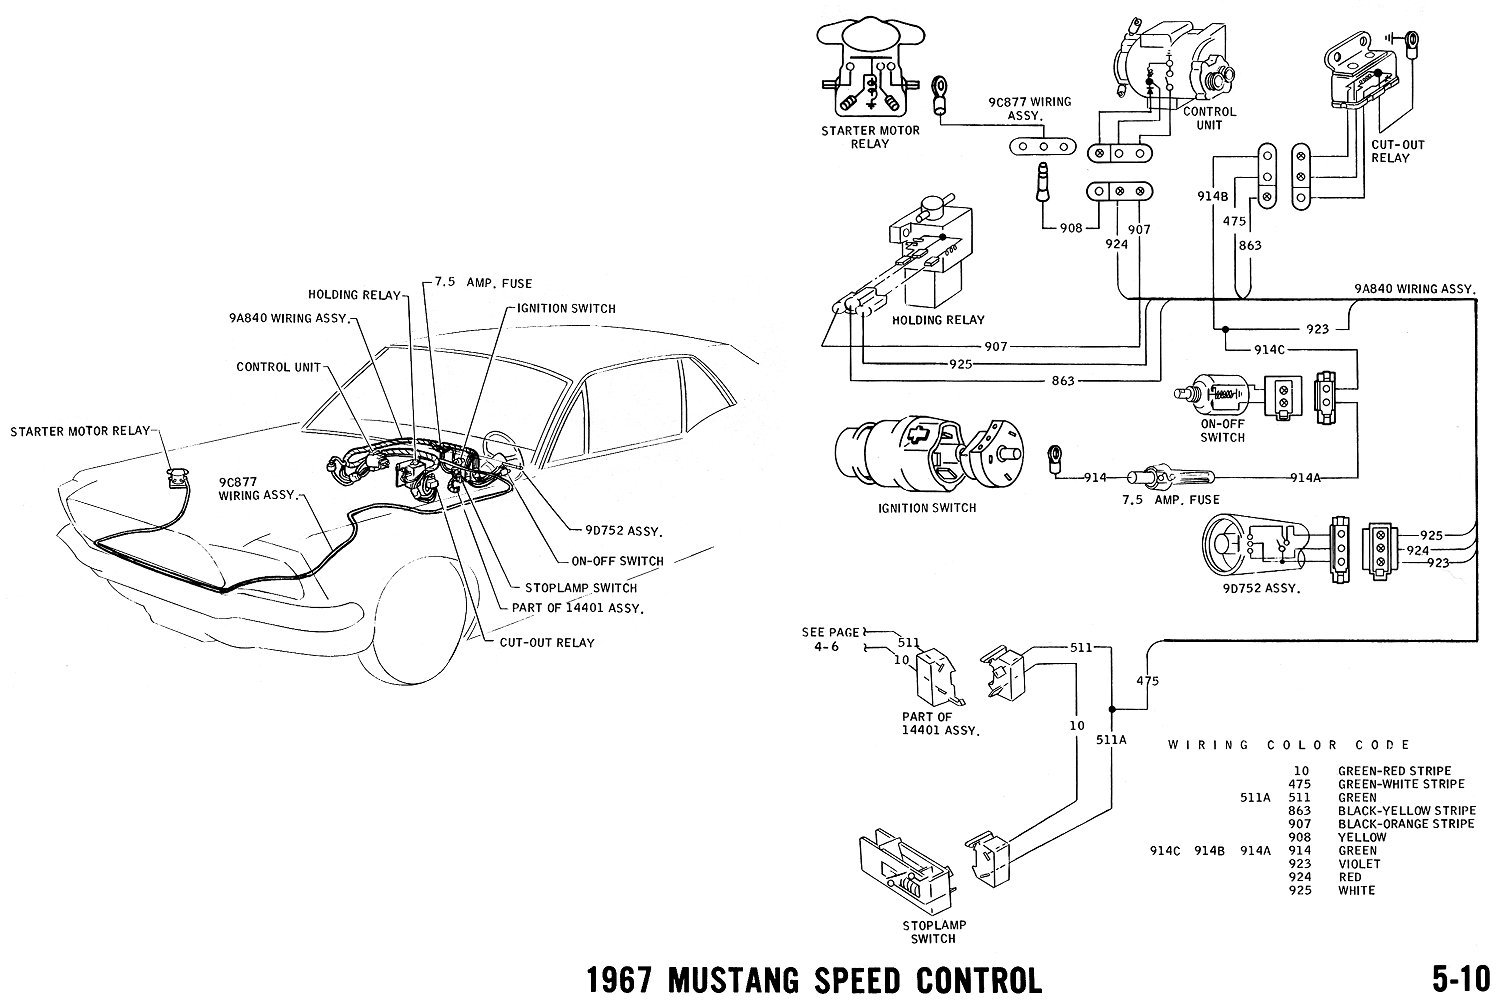 hight resolution of 1967 mustang wiring diagram wiring diagram mega 1967 mustang wiring and vacuum diagrams average joe restoration